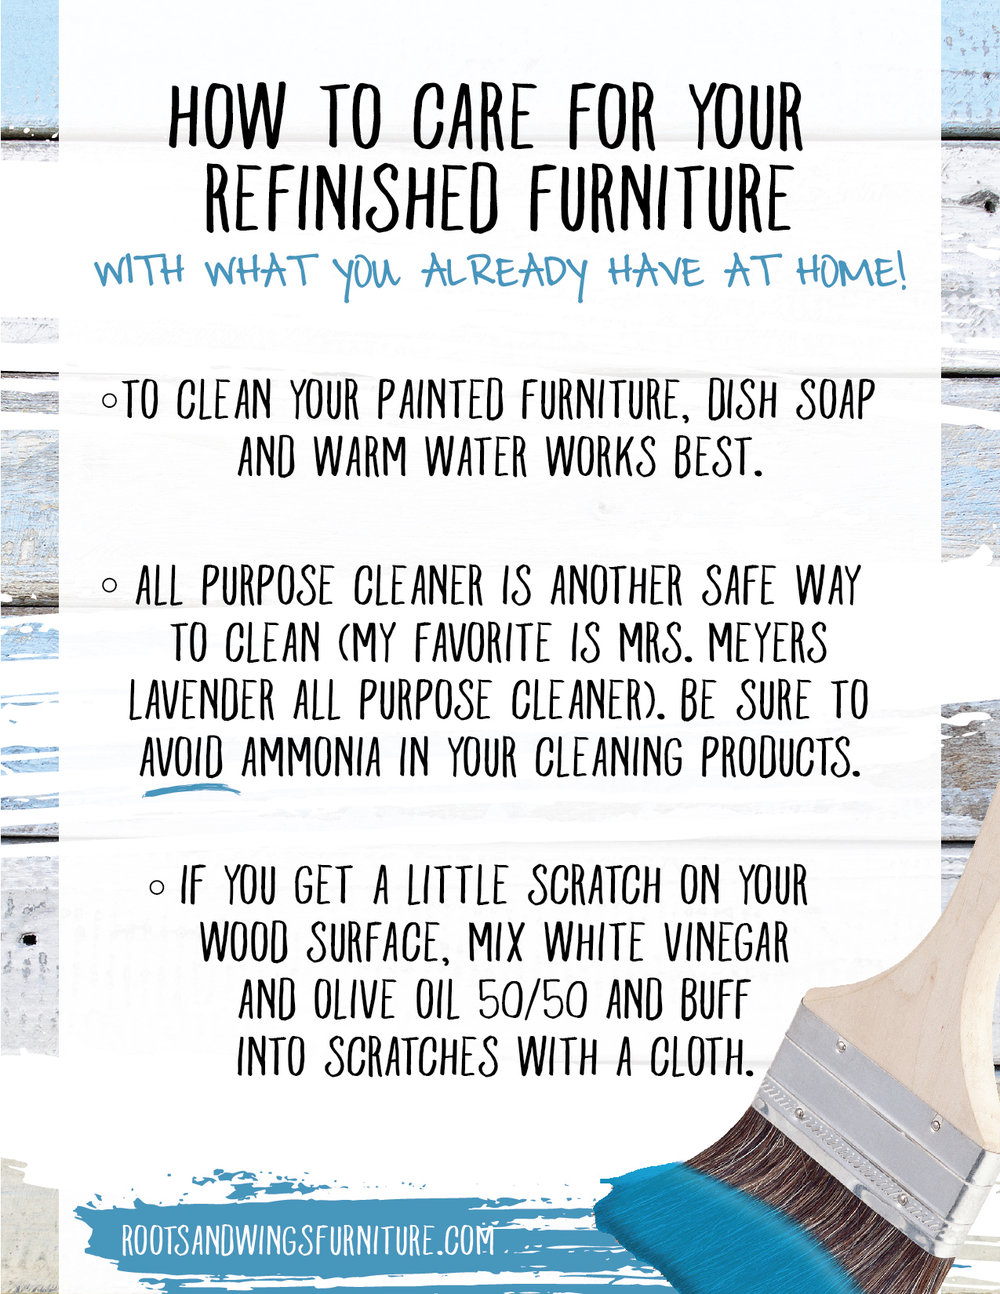 How to Care for YourRefinished Furniture Guide - Grab your downloadable copy here.